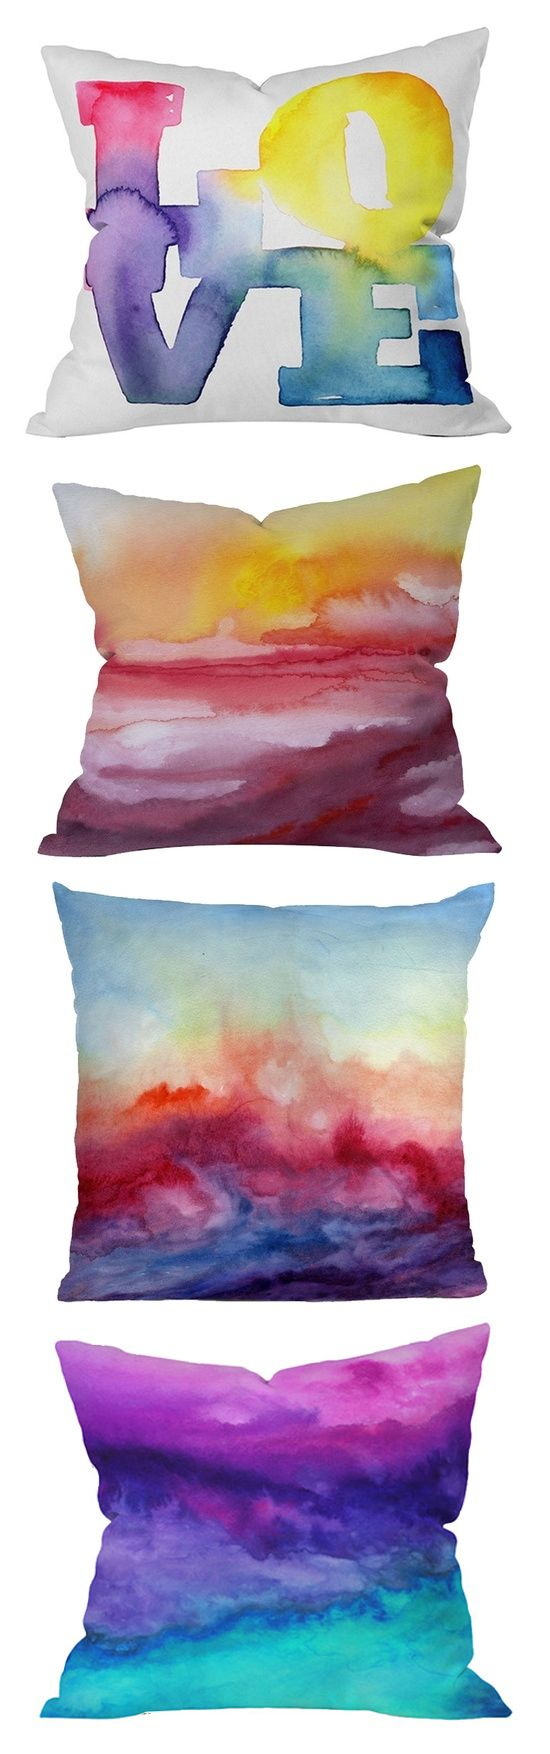 Sharpie DIY projects - I like the watercolor pillow idea